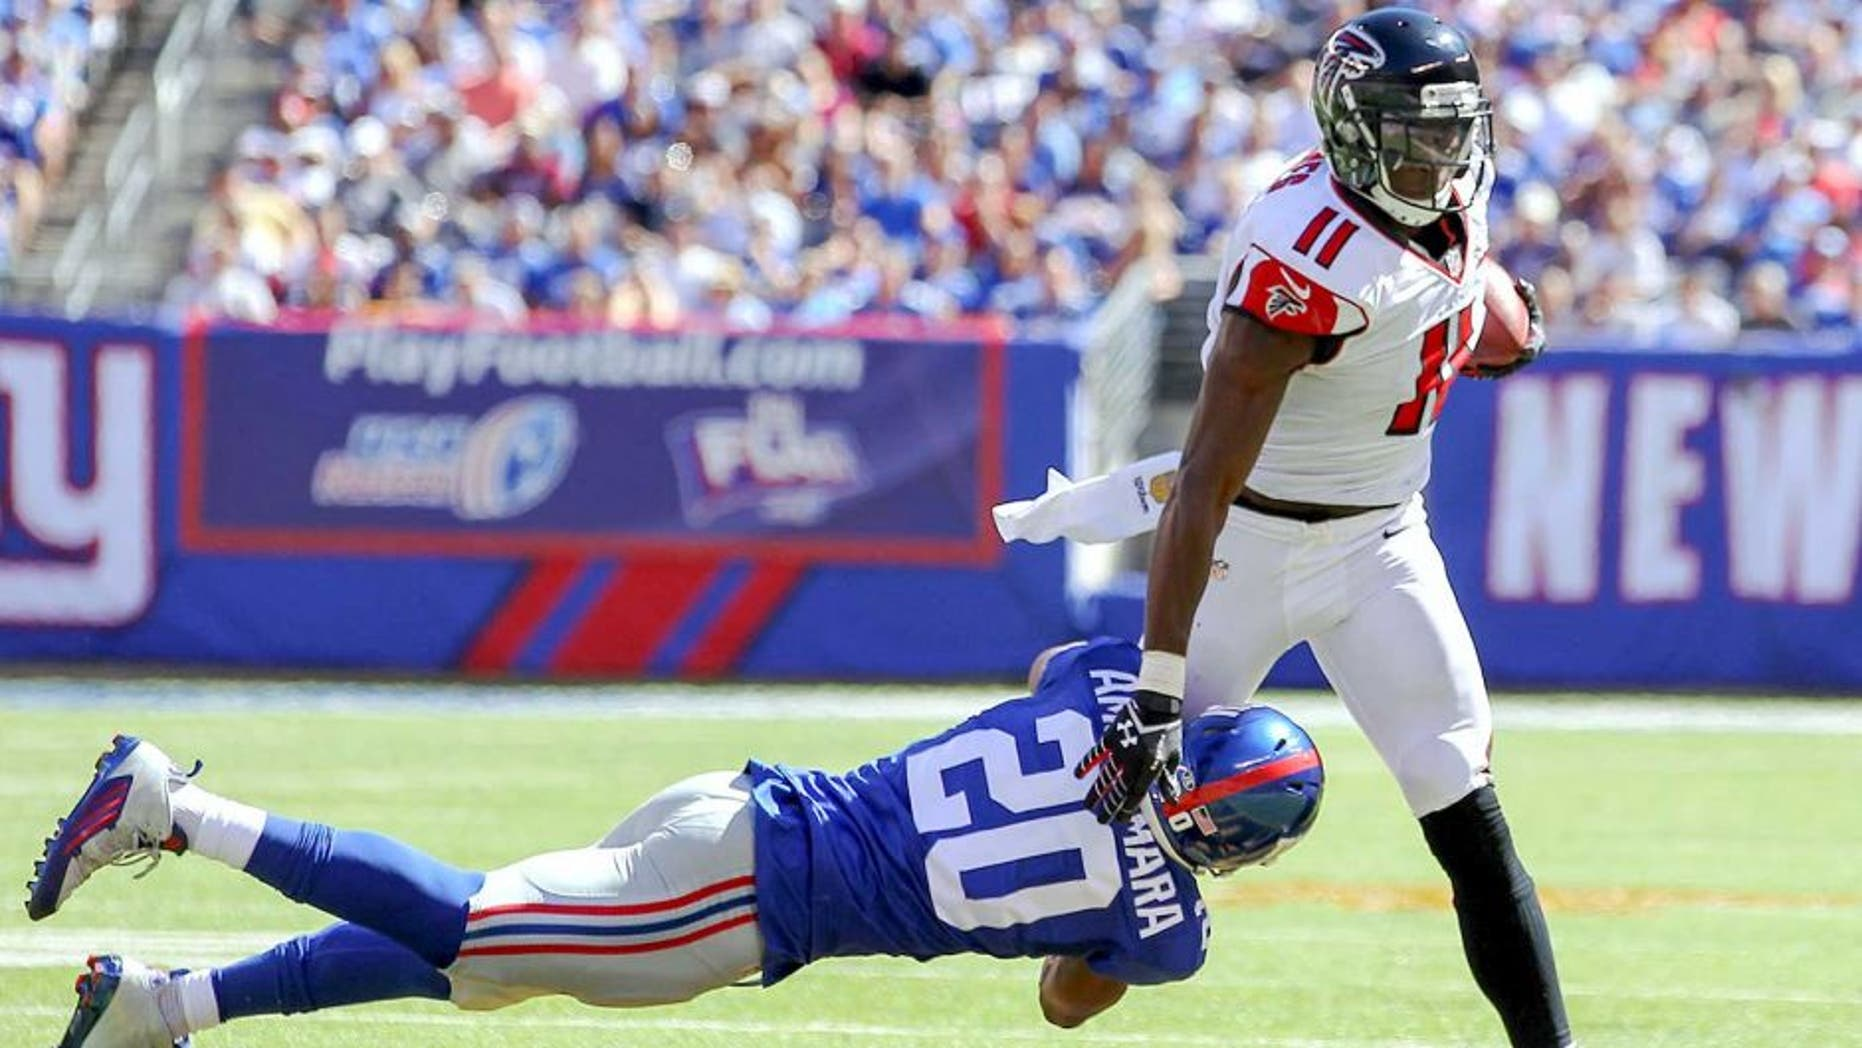 Sep 20, 2015; East Rutherford, NJ, USA; Atlanta Falcons wide receiver Julio Jones (11) runs with the ball while trying to avoid a tackle by New York Giants cornerback Prince Amukamara (20) during the first half at MetLife Stadium. Mandatory Credit: Ed Mulholland-USA TODAY Sports